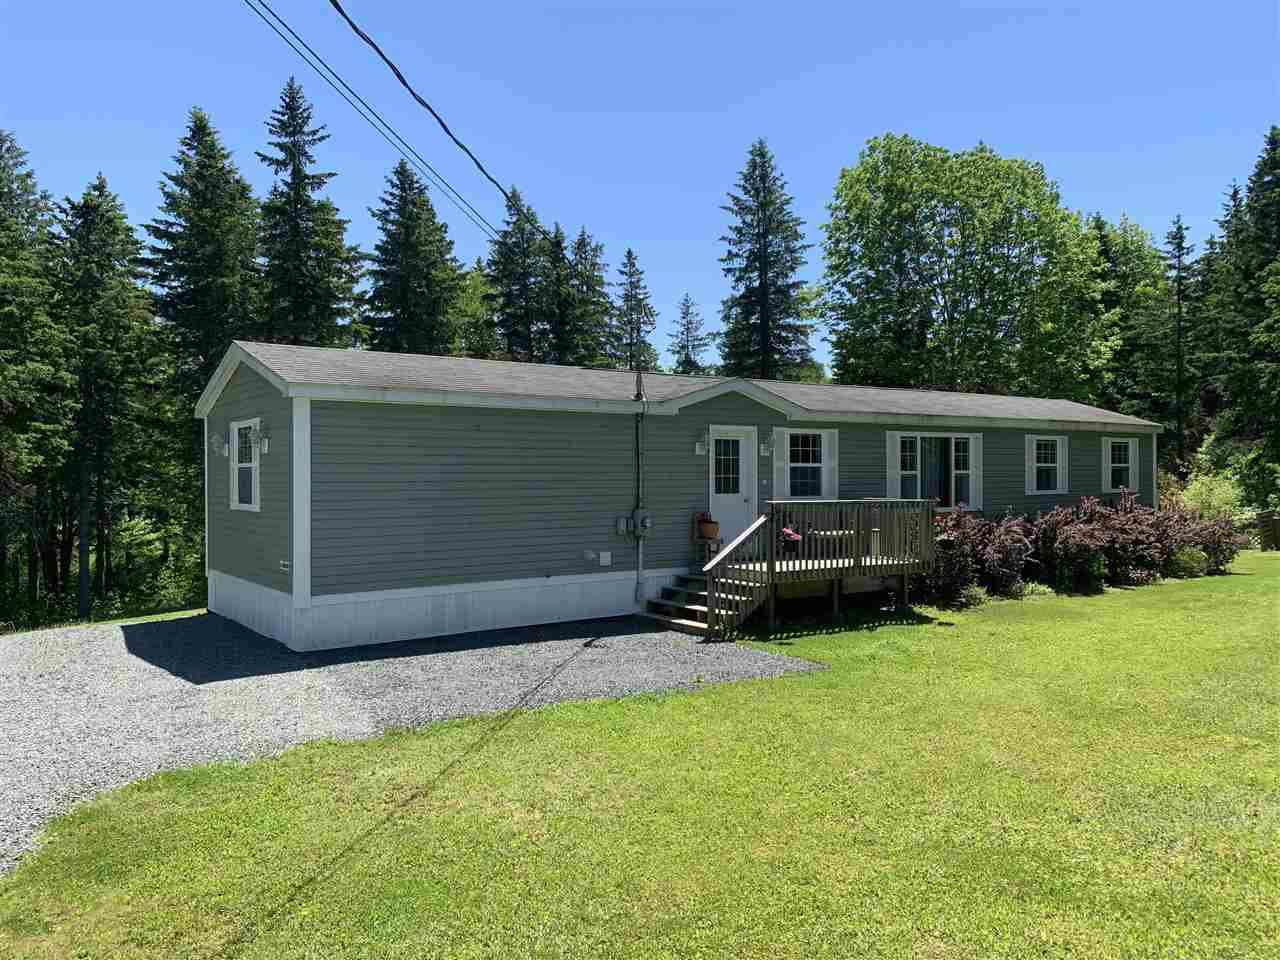 Main Photo: 932 Foxbrook Road in Foxbrook: 108-Rural Pictou County Residential for sale (Northern Region)  : MLS®# 202010614